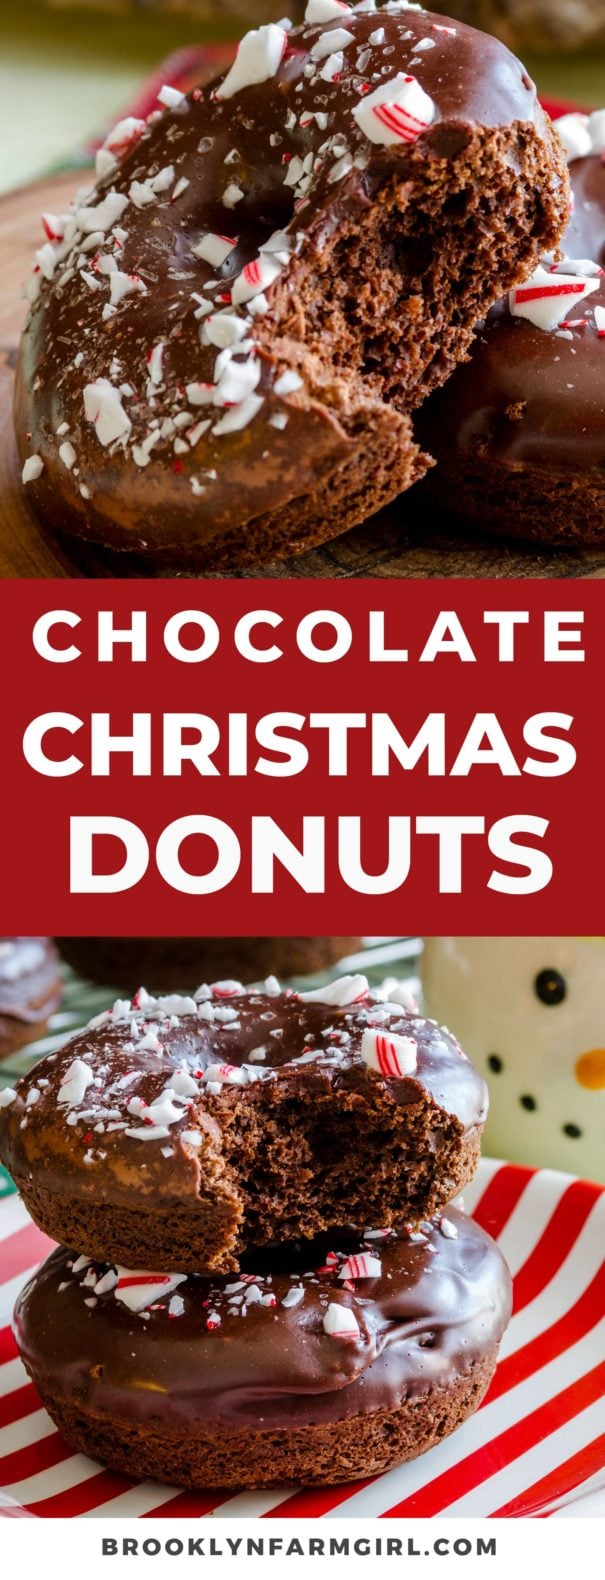 These Christmas donuts are fluffy baked chocolate donuts coated in chocolate frosting then topped with crushed peppermint candy canes. A fun and festive dessert that's perfect for Christmas breakfast!